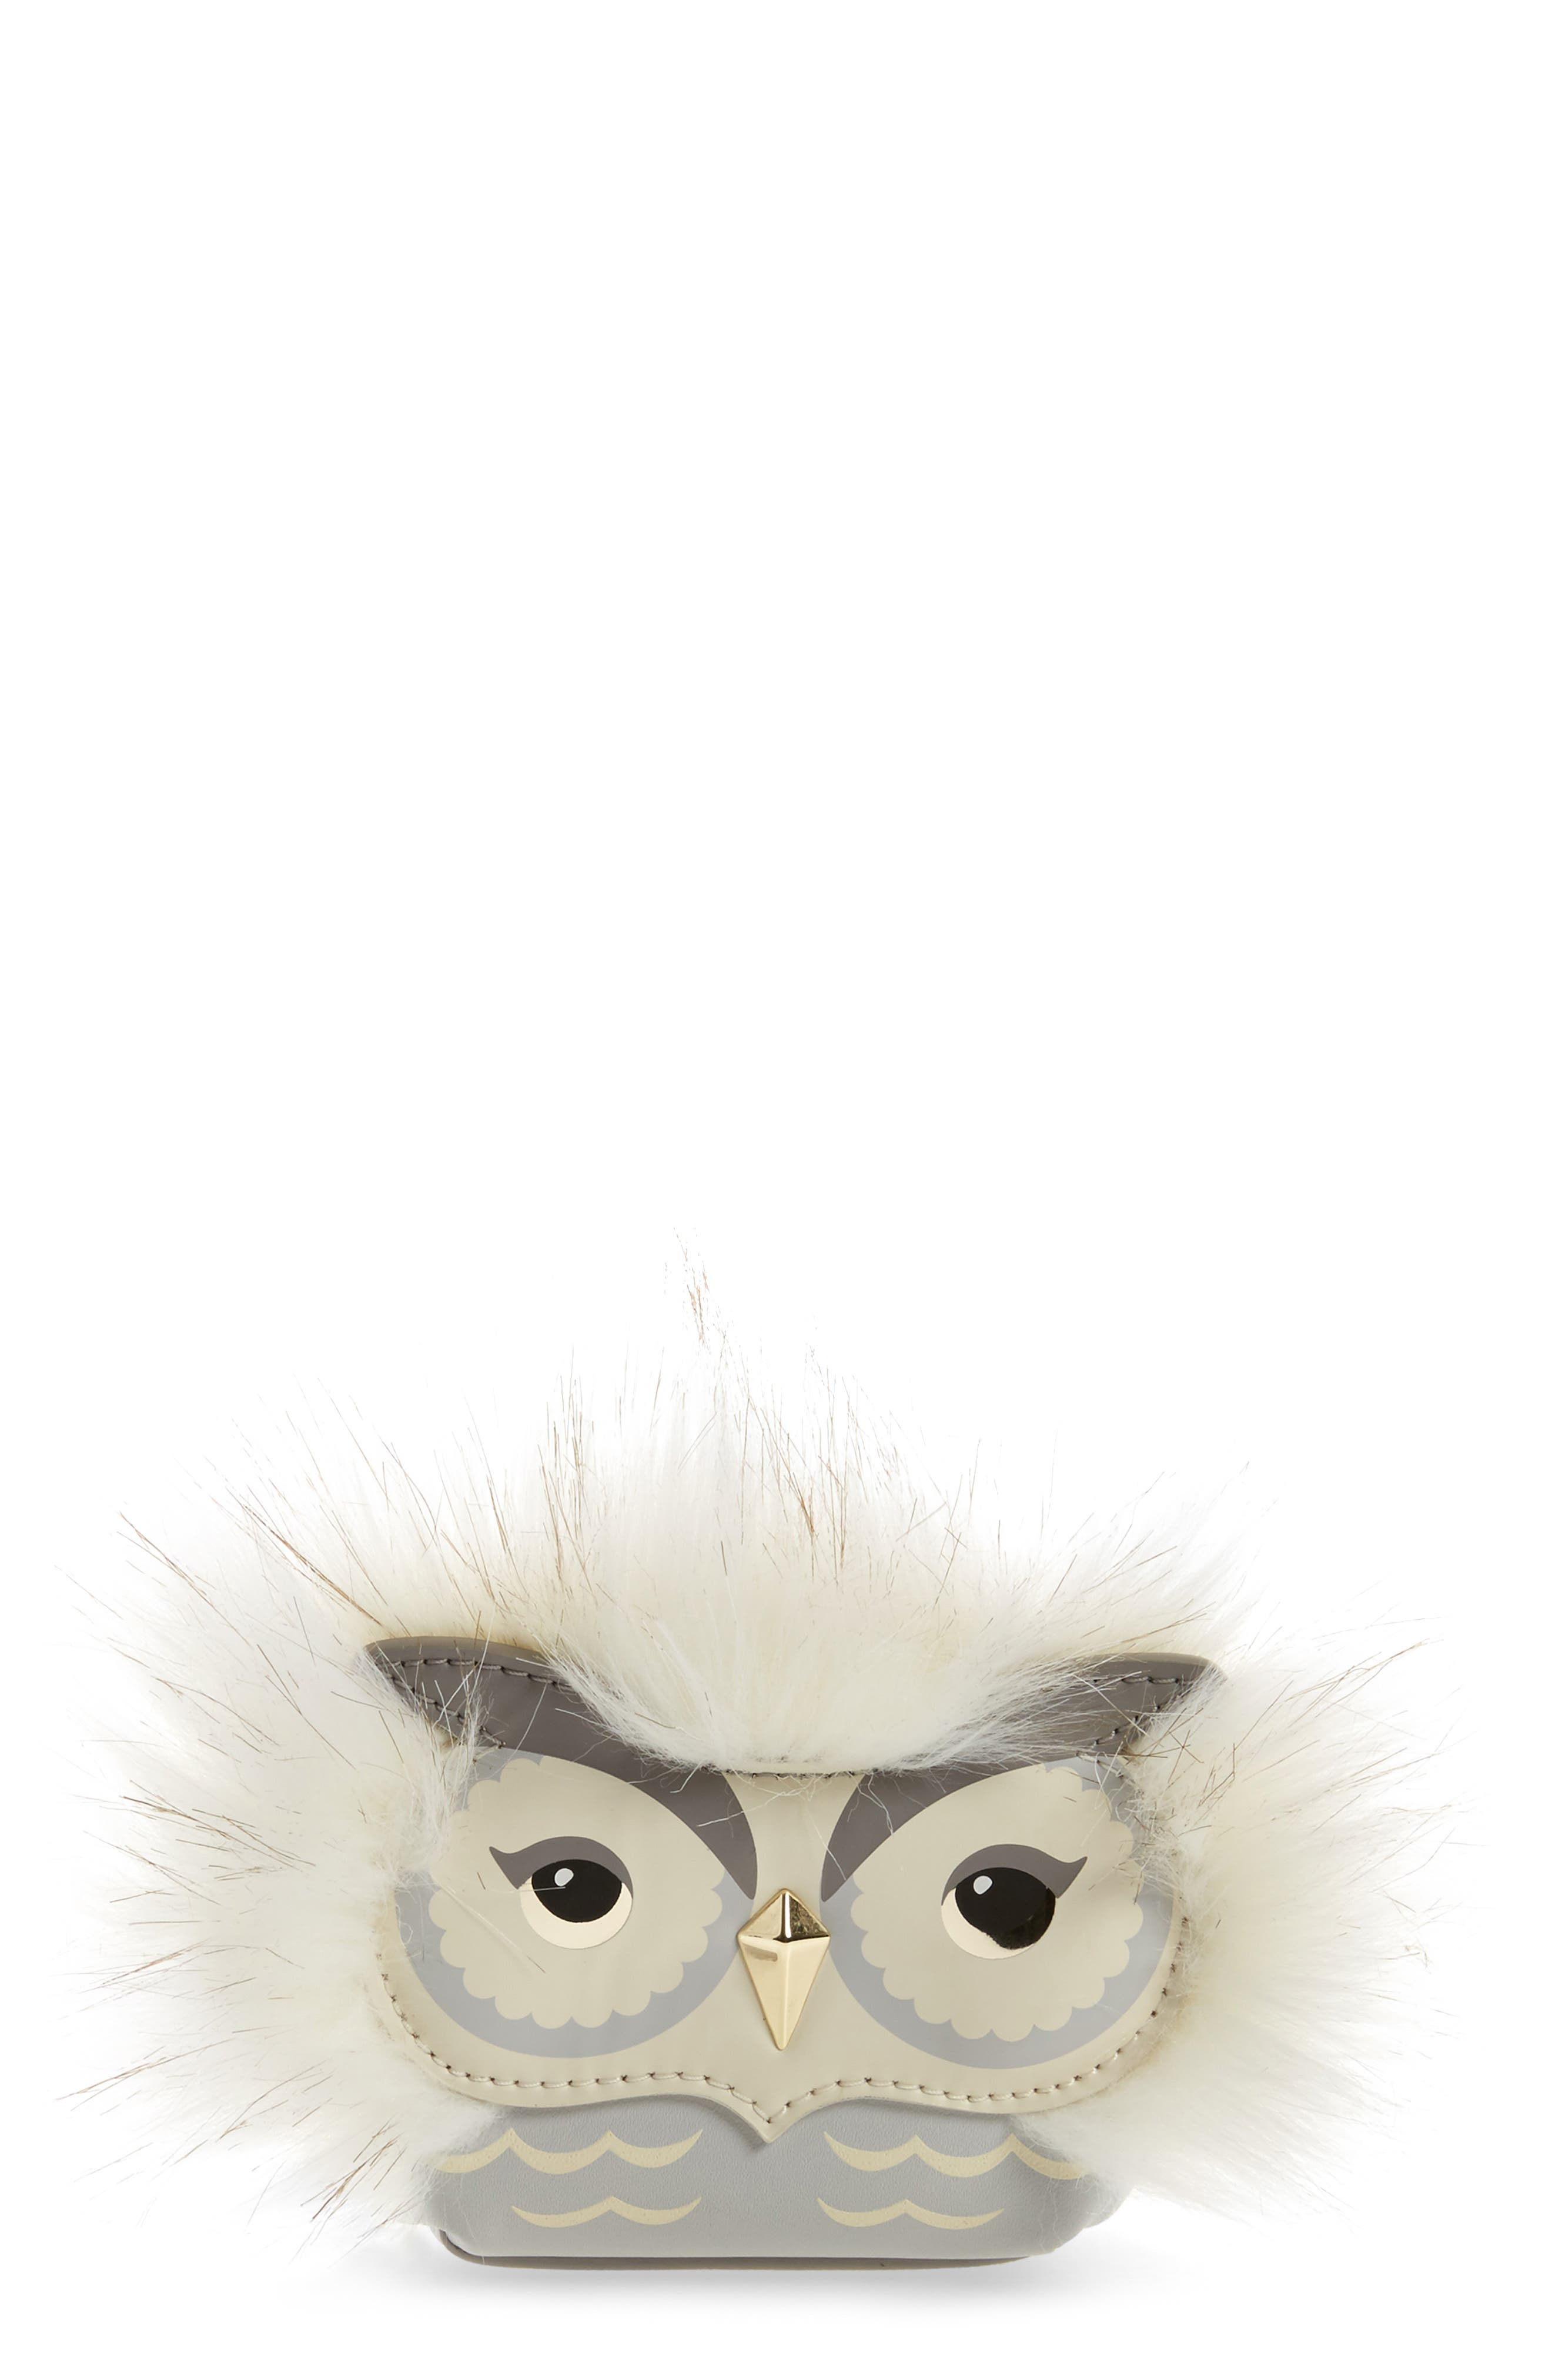 Alternate Image 1 Selected - kate spade new york starbright owl faux fur & leather coin case/bag charm